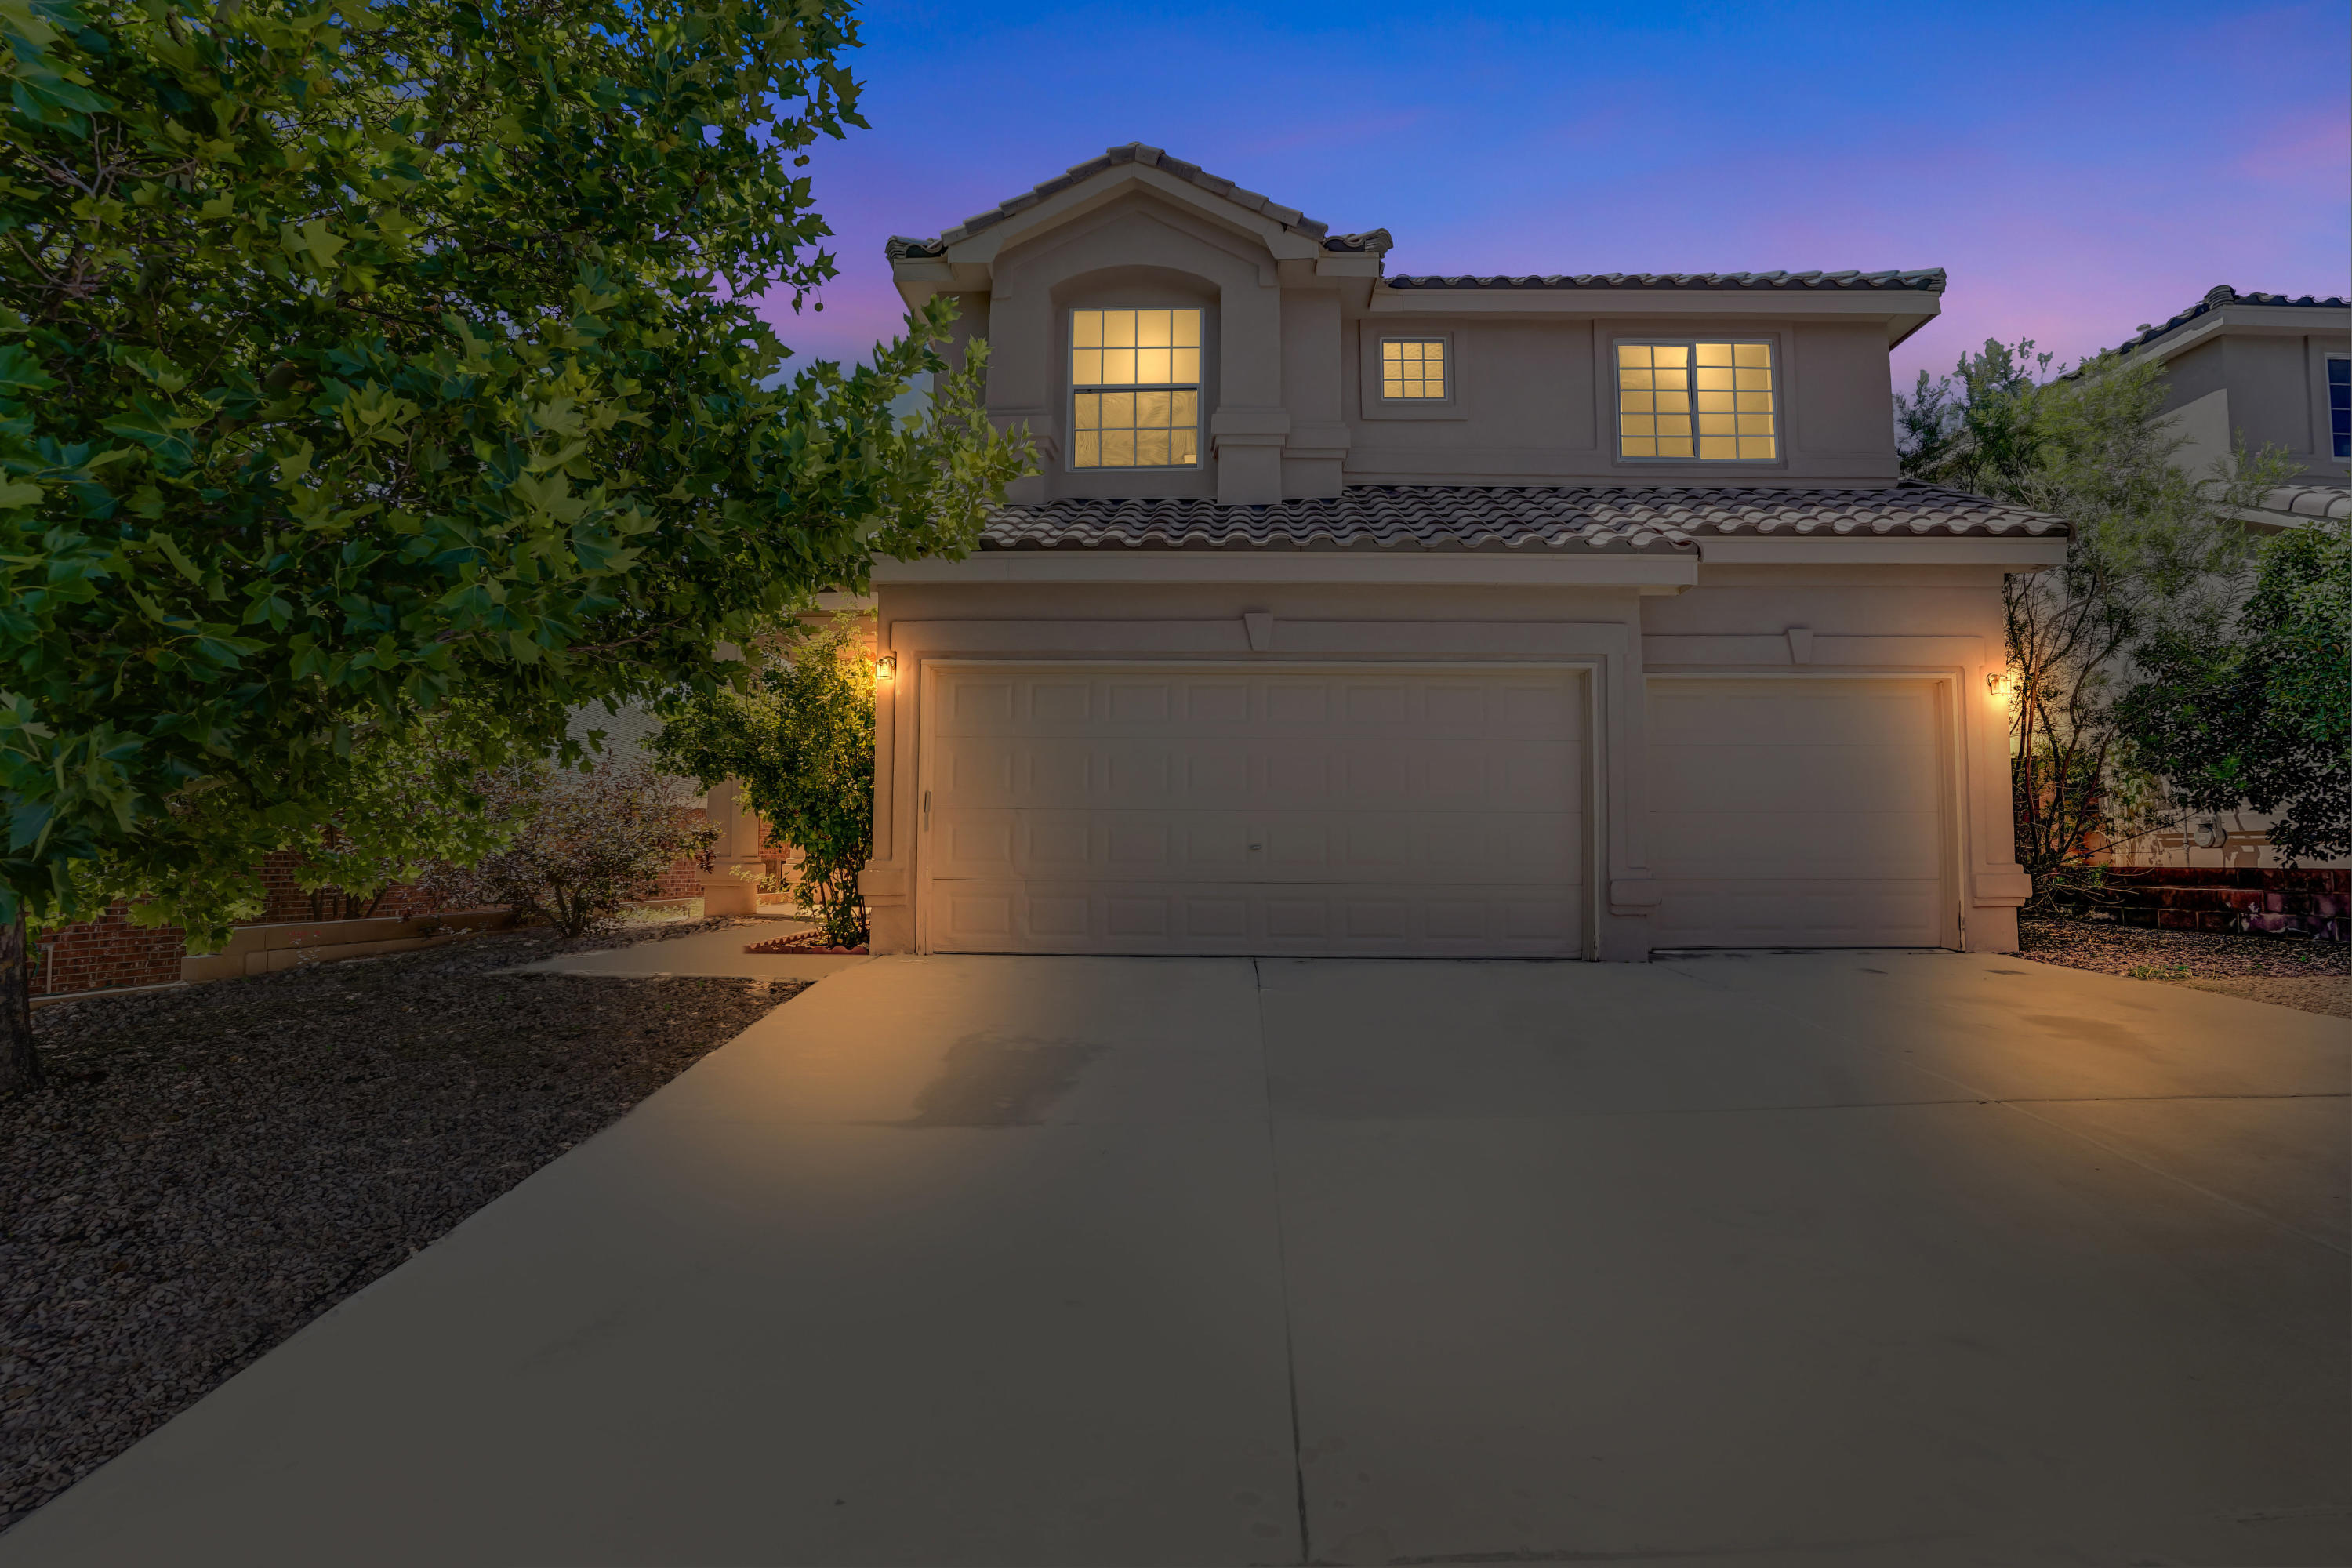 A fabulous Paradise West home with an amazing floorpan, lots of garage space, and bedrooms. This home will sell fast!